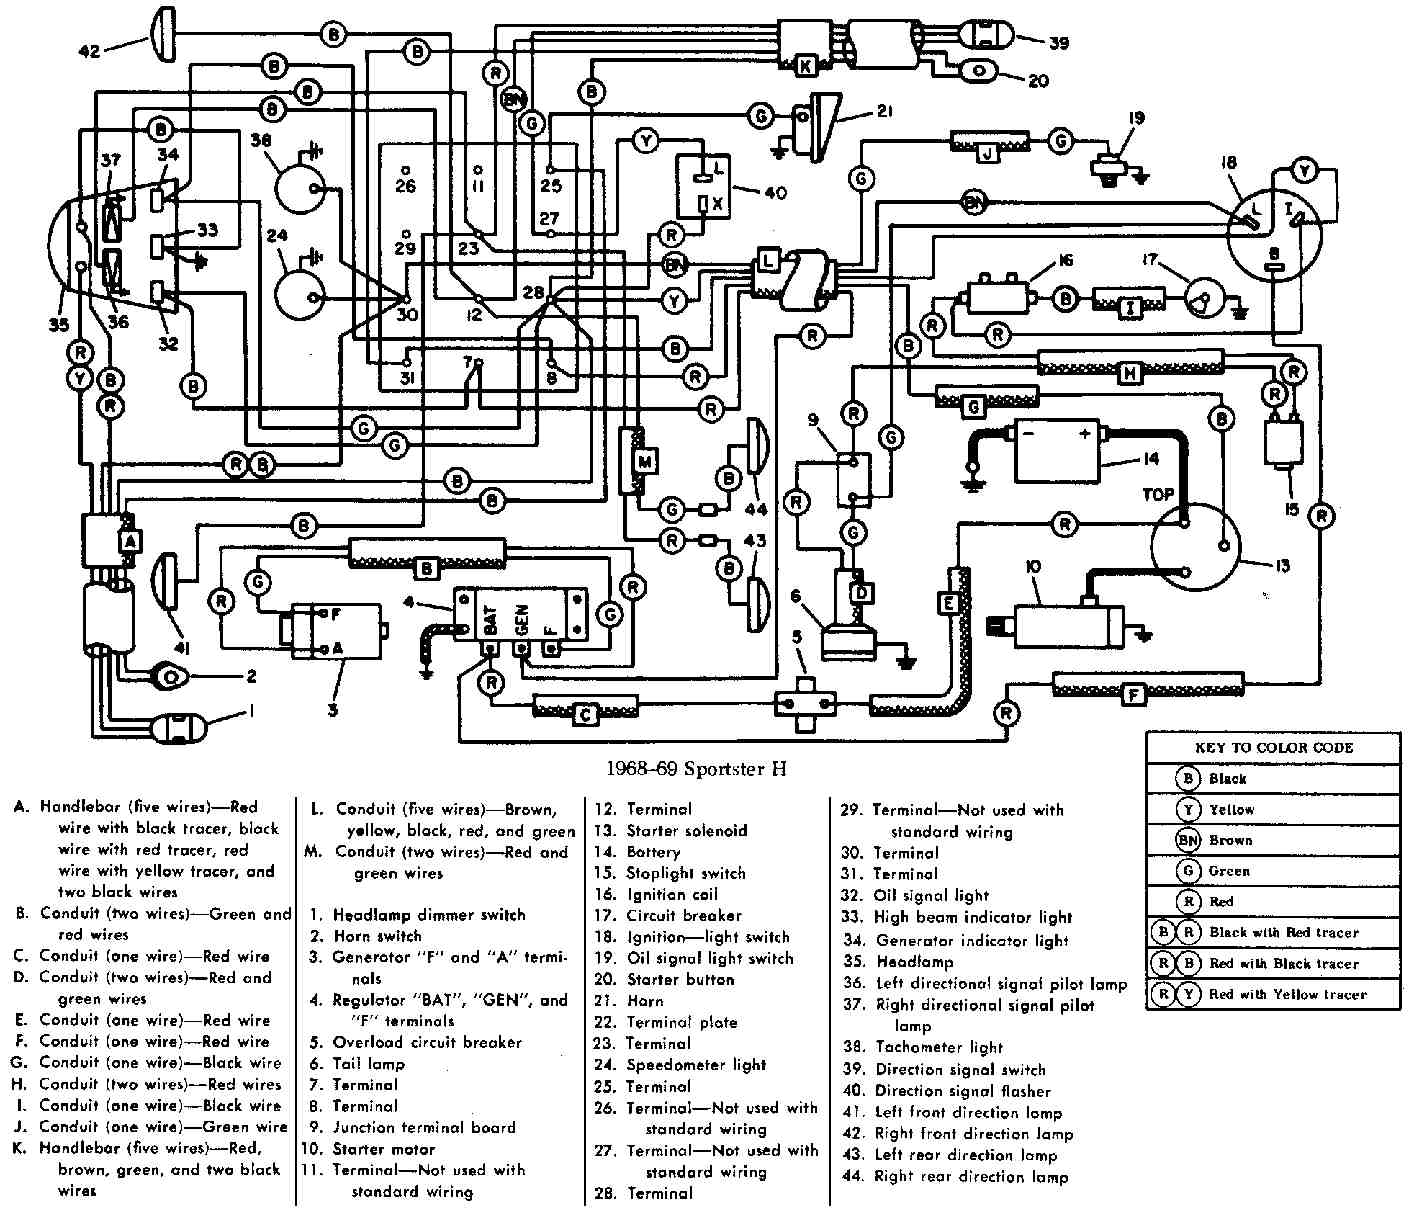 1967 Barracuda Wiring Diagram together with 1988 Chevy Pickup Coil Test furthermore 1963 Pontiac Wiper Motor Harness Wiring Diagrams moreover 1970 Chevelle Ke Line Routing Diagram likewise 2012 Chevy Traverse Engine Diagram. on 1967 chevy impala ignition wiring diagram